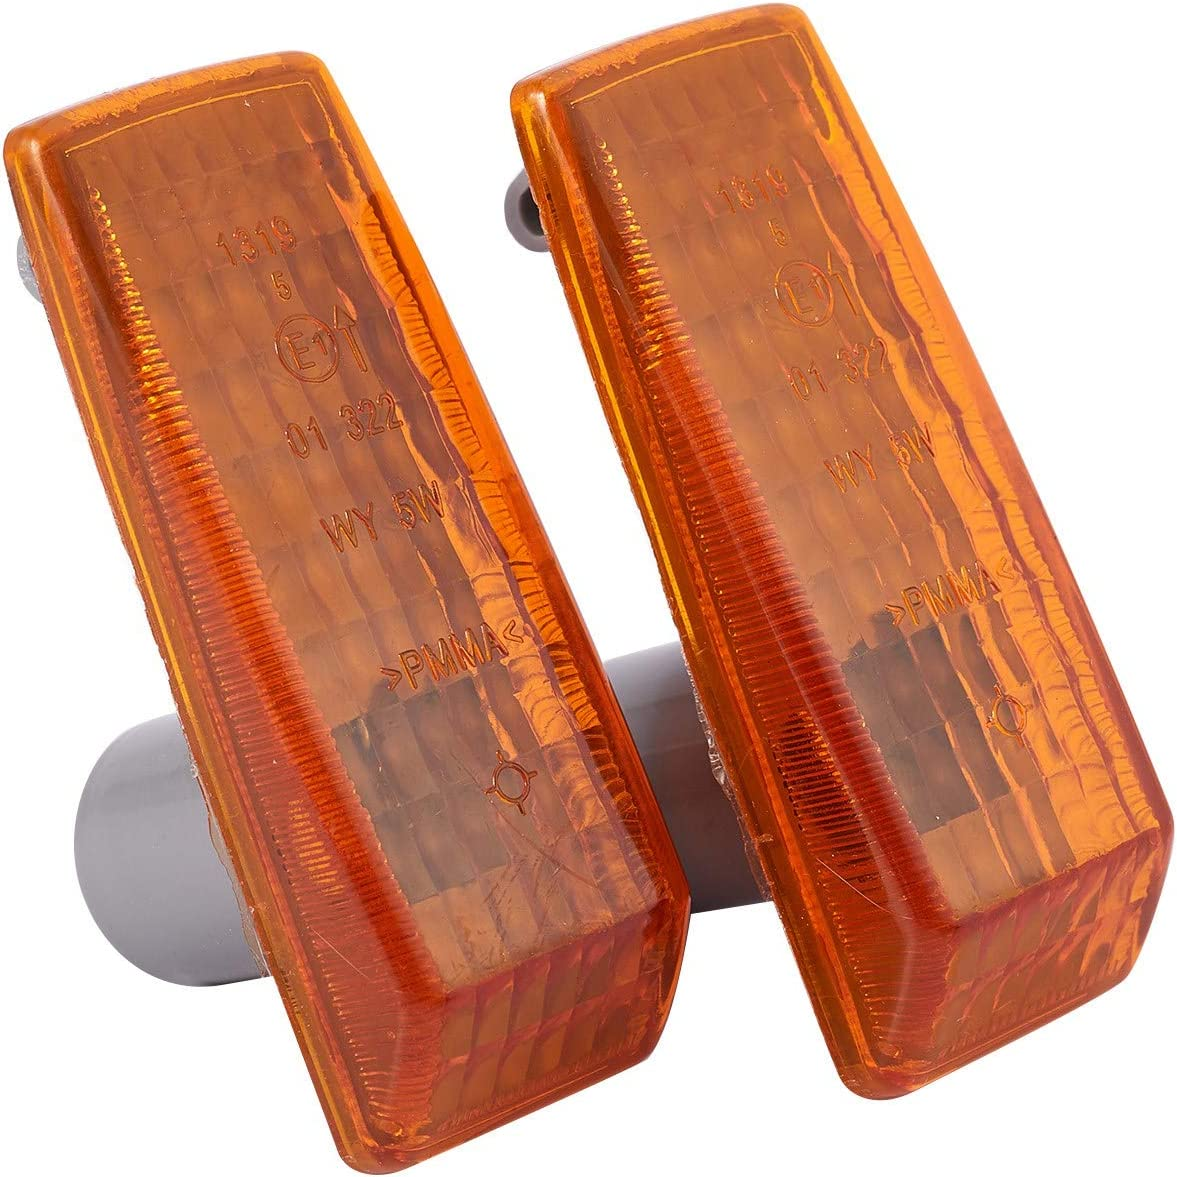 Nrpfell 2Pcs Car Turn Signal Light Indicator Repeater Lamp Cover Yellow for Mercedes W124 R129 W140 W202 W201